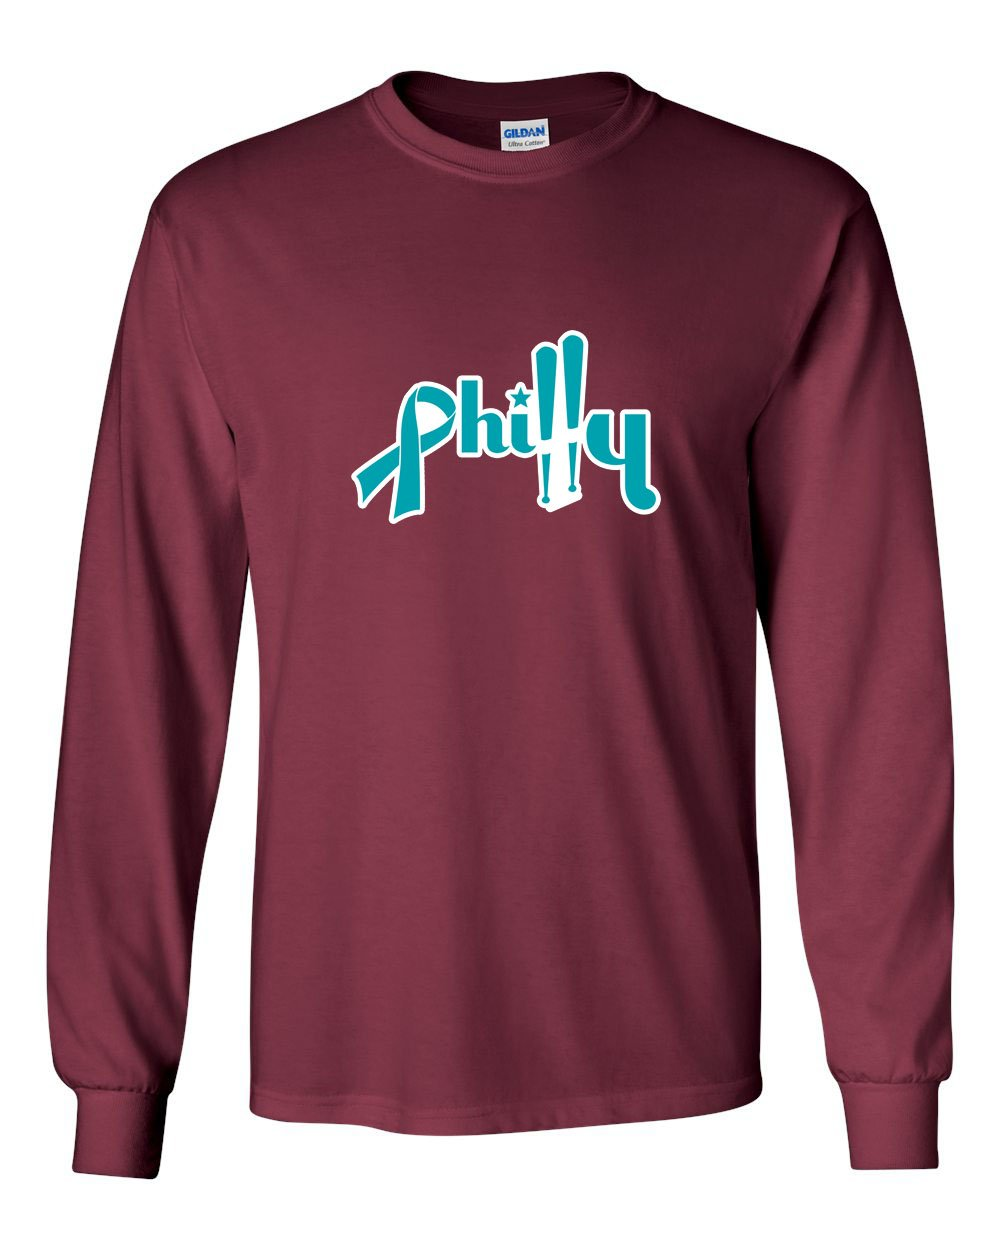 Ovarian Philly MENS Long Sleeve Heavy Cotton T-Shirt